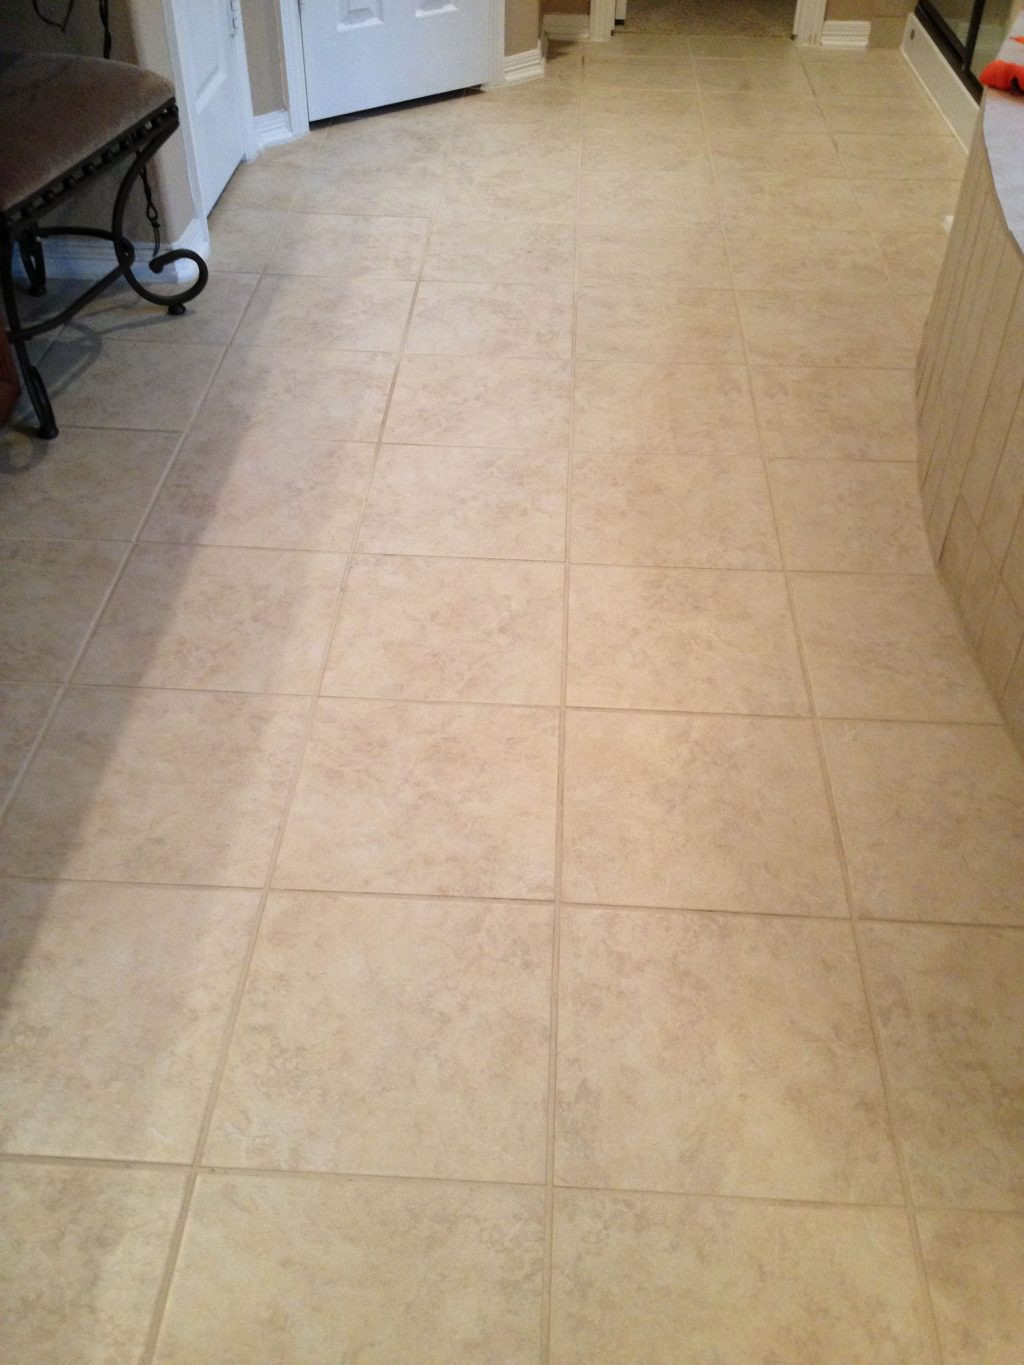 home depot hardwood floor cleaner of cleaning machine ideas home depot carpet cleaner rental with with regard to large size of cleaning machine cleaning machine lowes floor scrubber incredible photo inspirations grout in